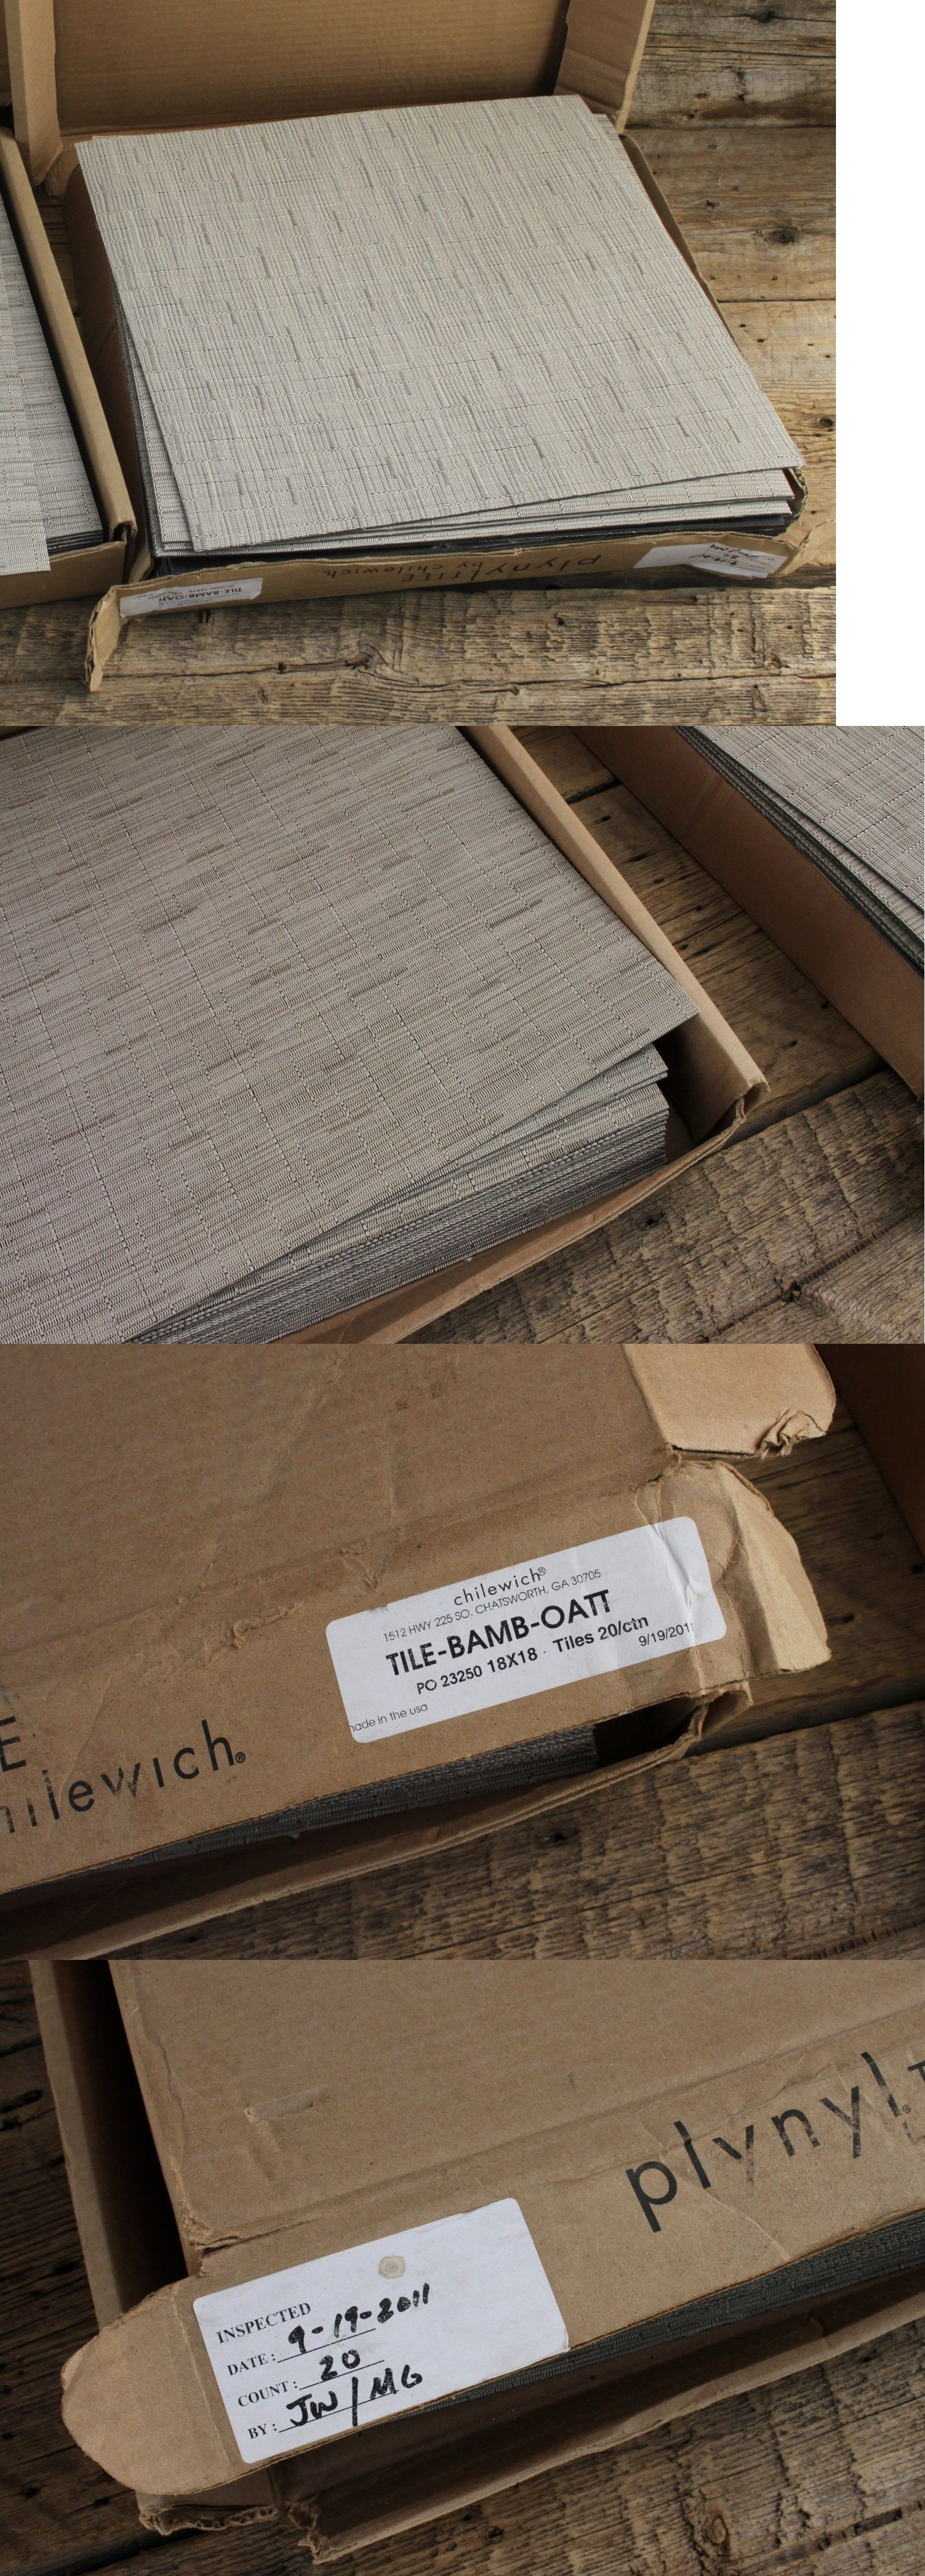 Carpet Tiles 136820: One Full Box Of Chilewich Plynyl Bamboo Oatt ...